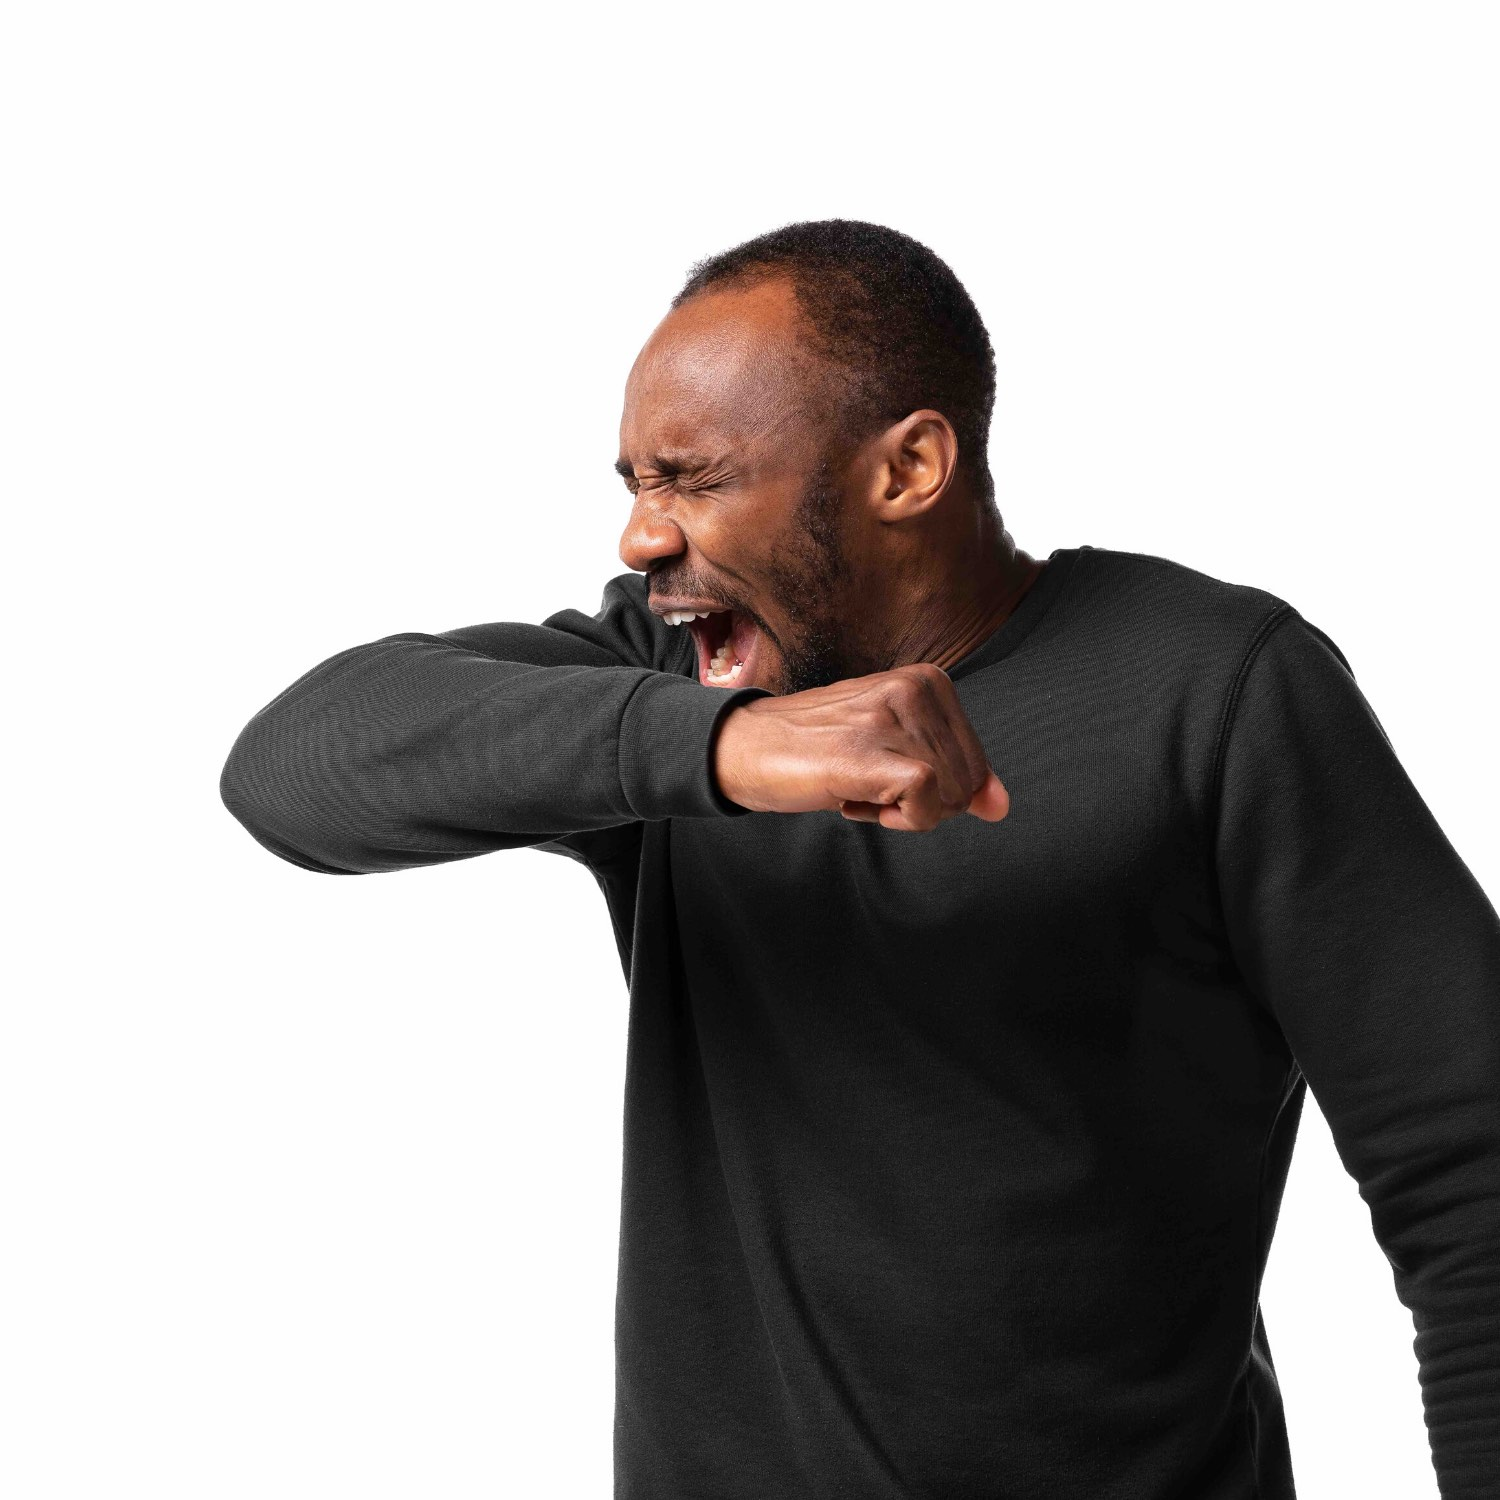 Remember that coughing and sneezing spreads the virus. So if you need to cough or sneeze, use a tissue or do it into your elbow.